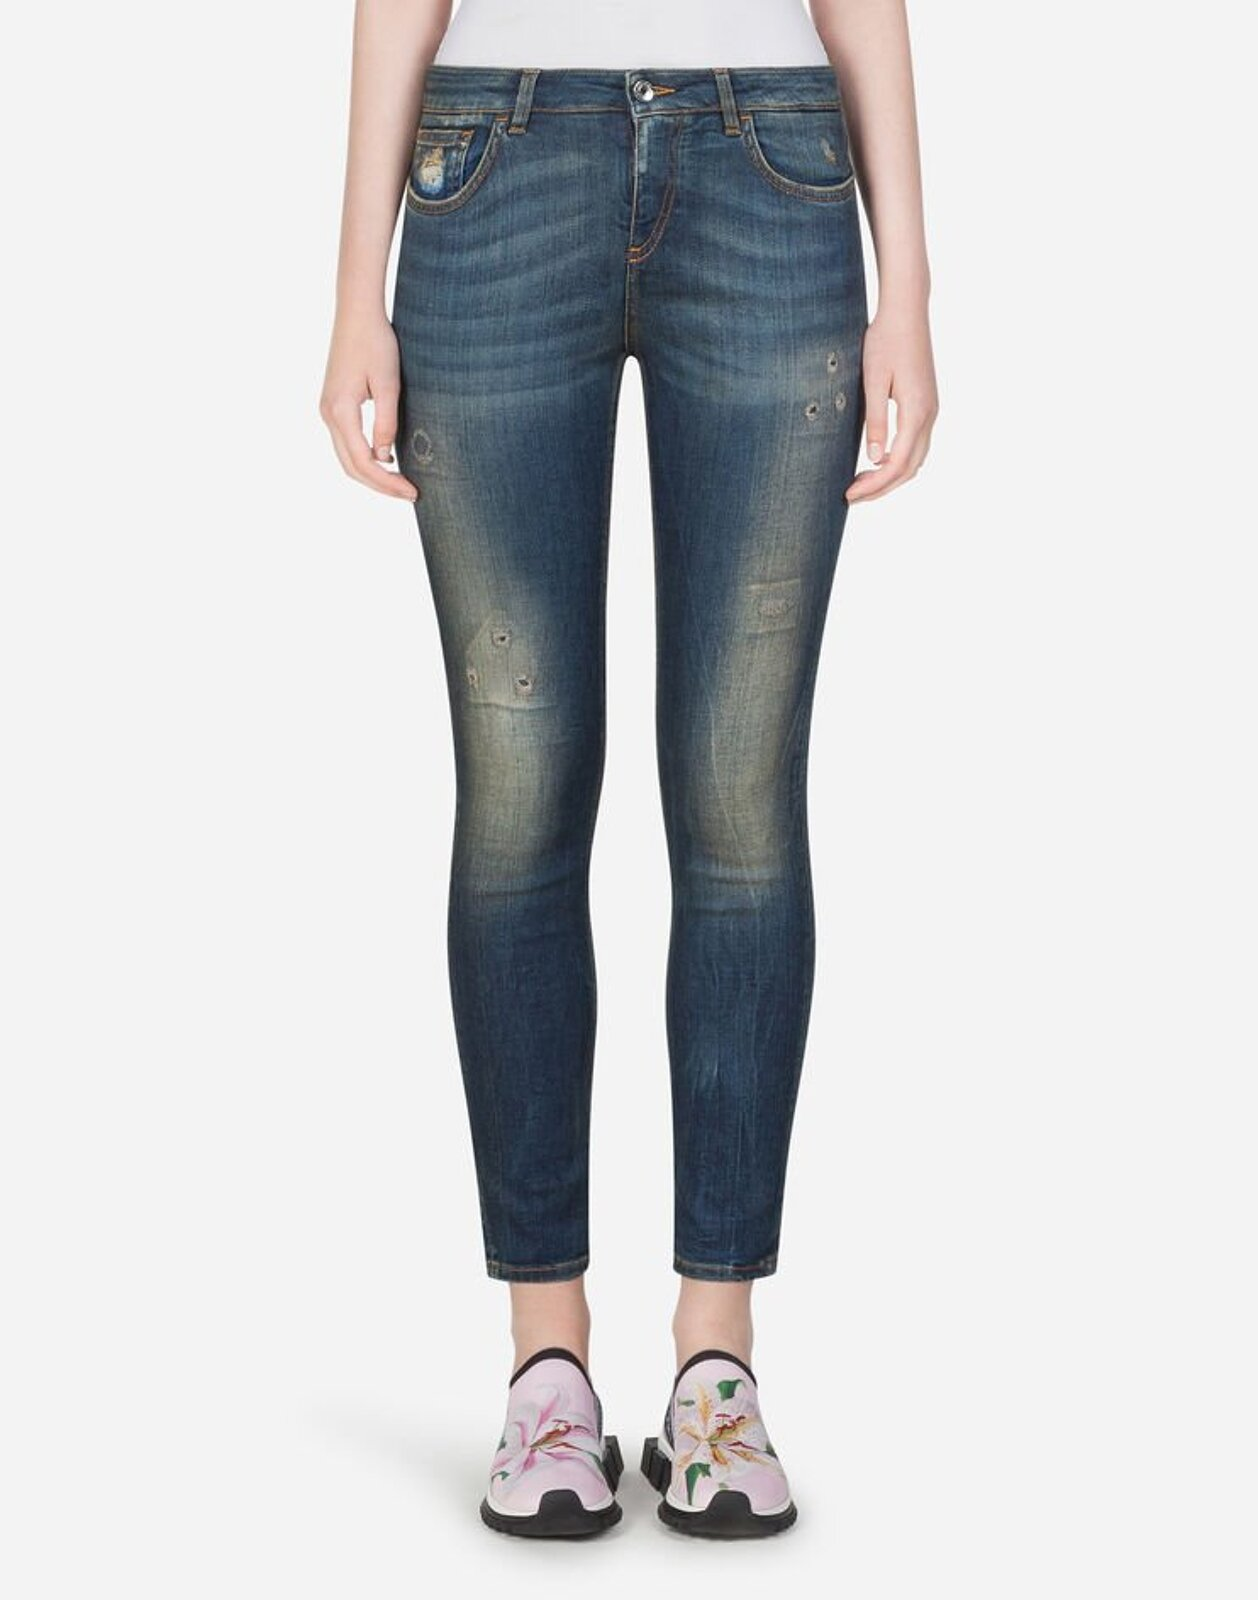 Jeans Fit Pretty In Denim - Dolce & Gabbana